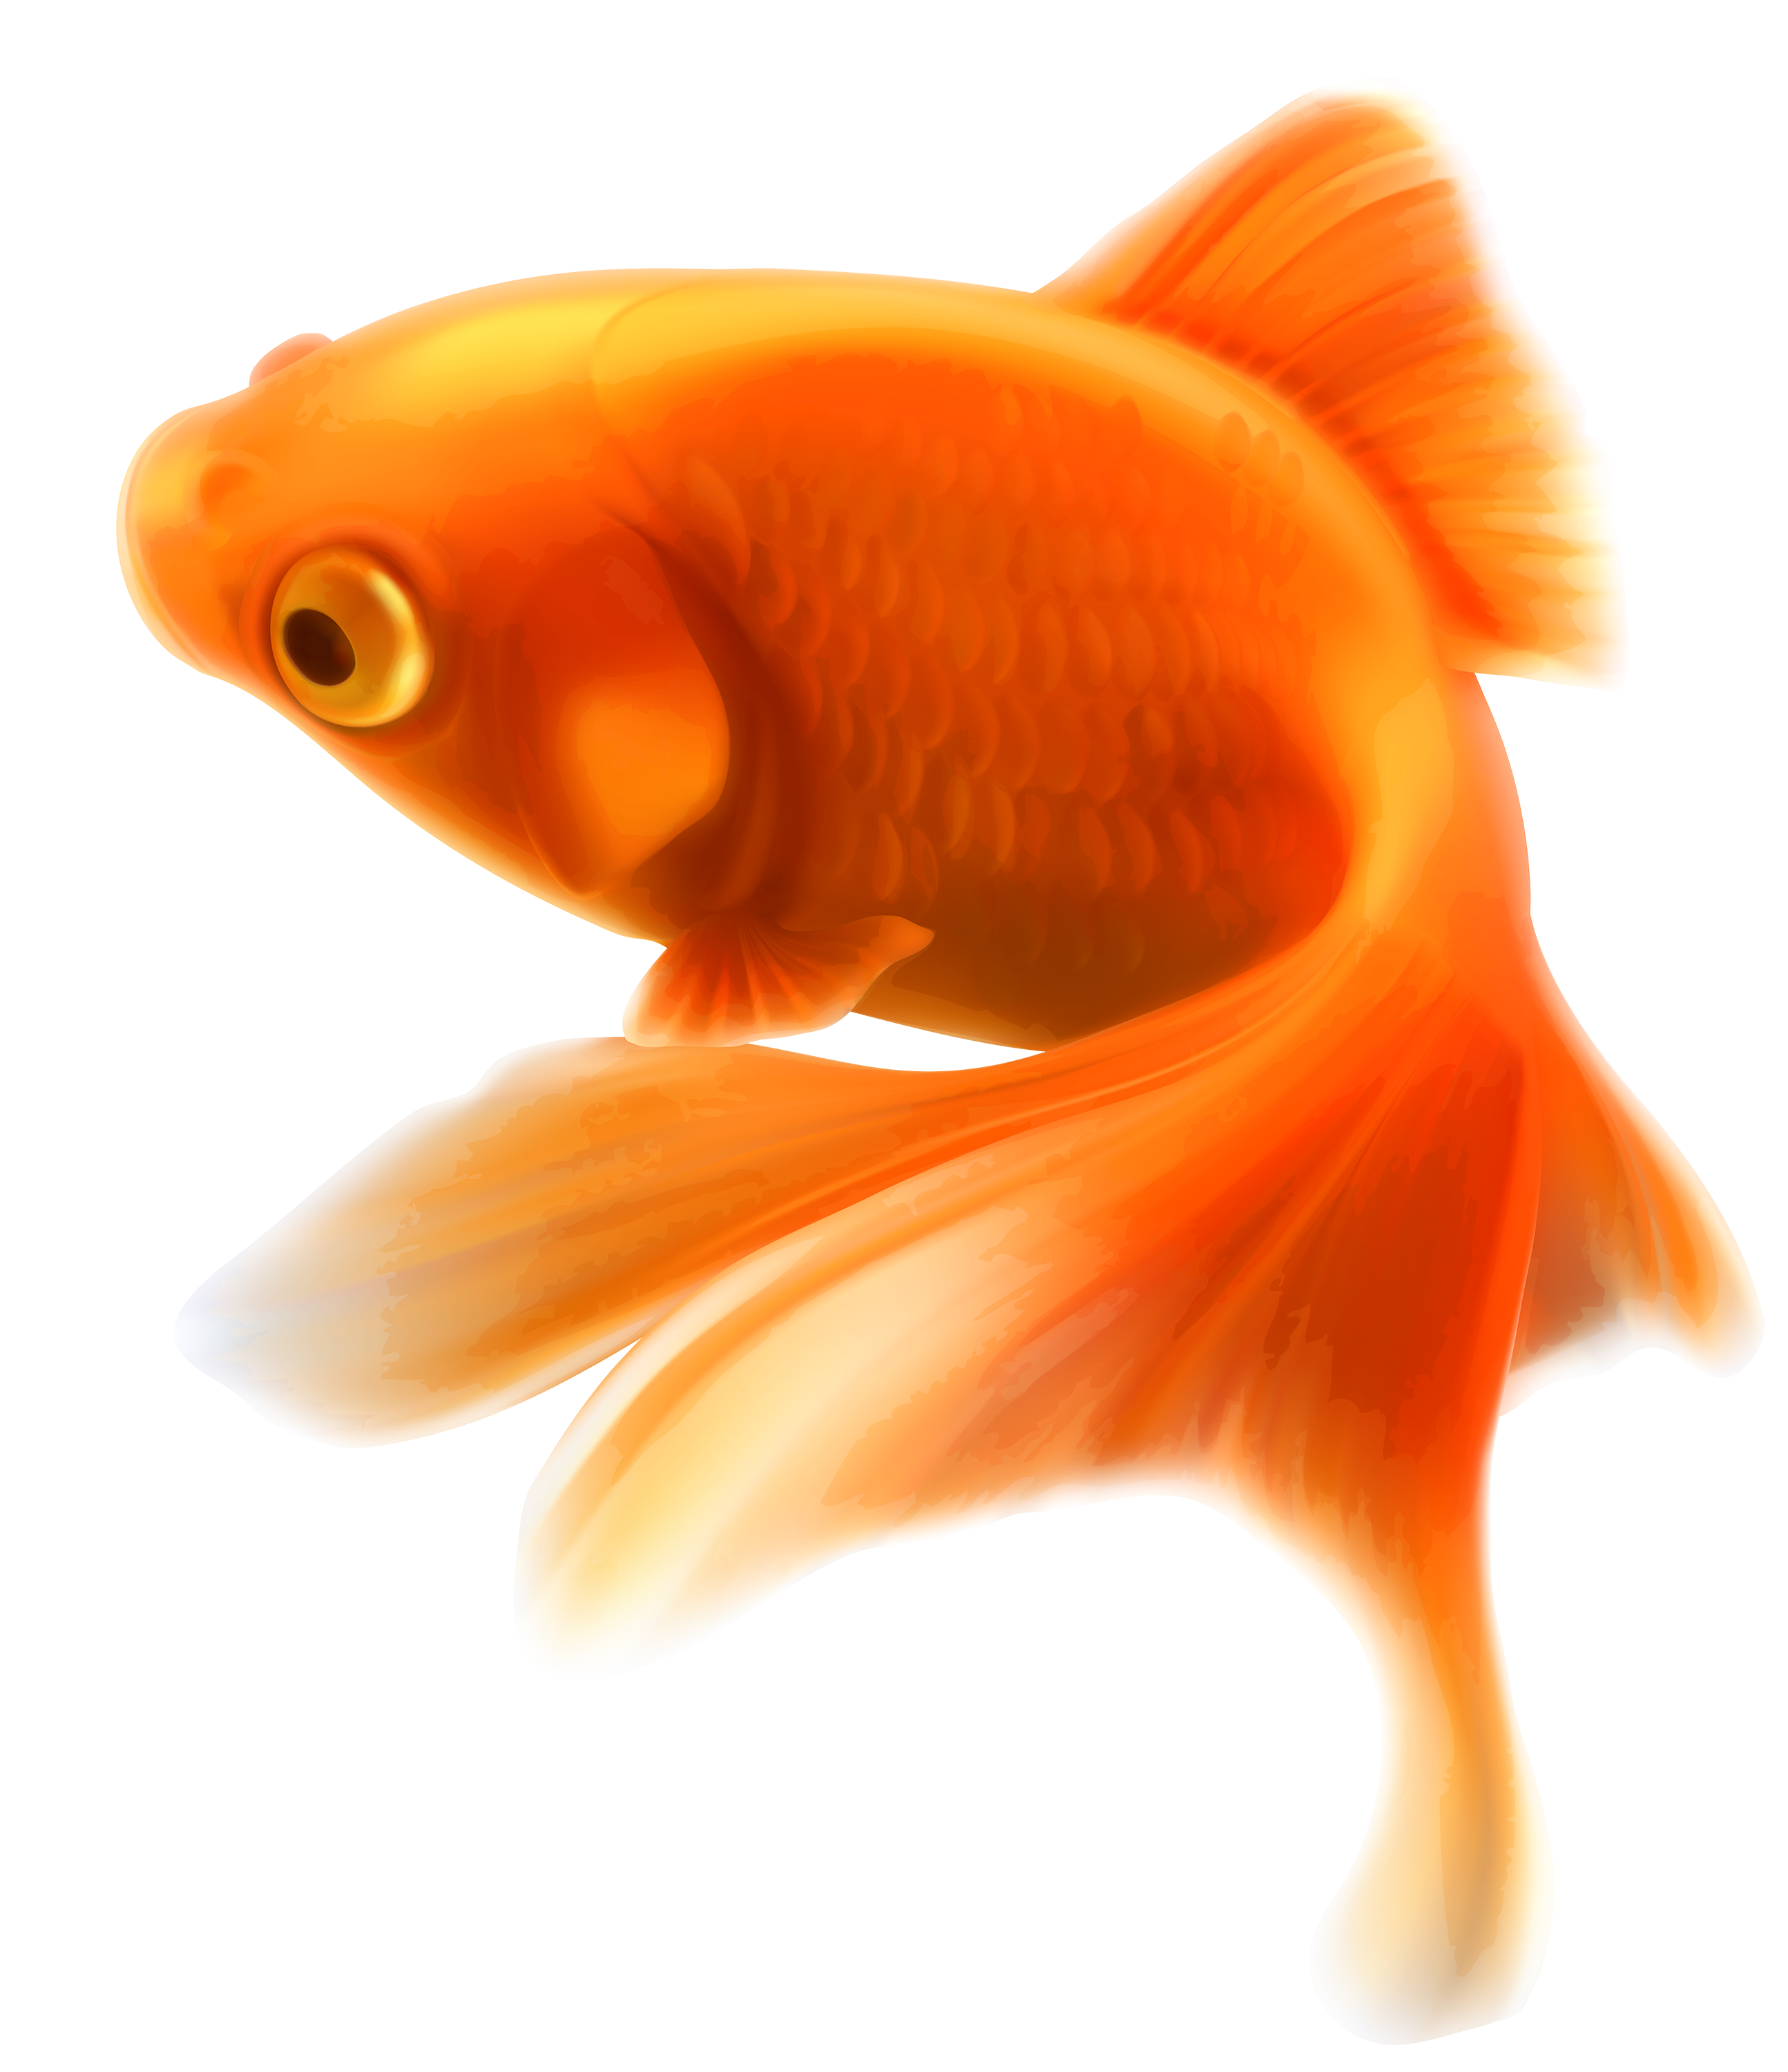 Gold fish png best. Fishing clipart dog